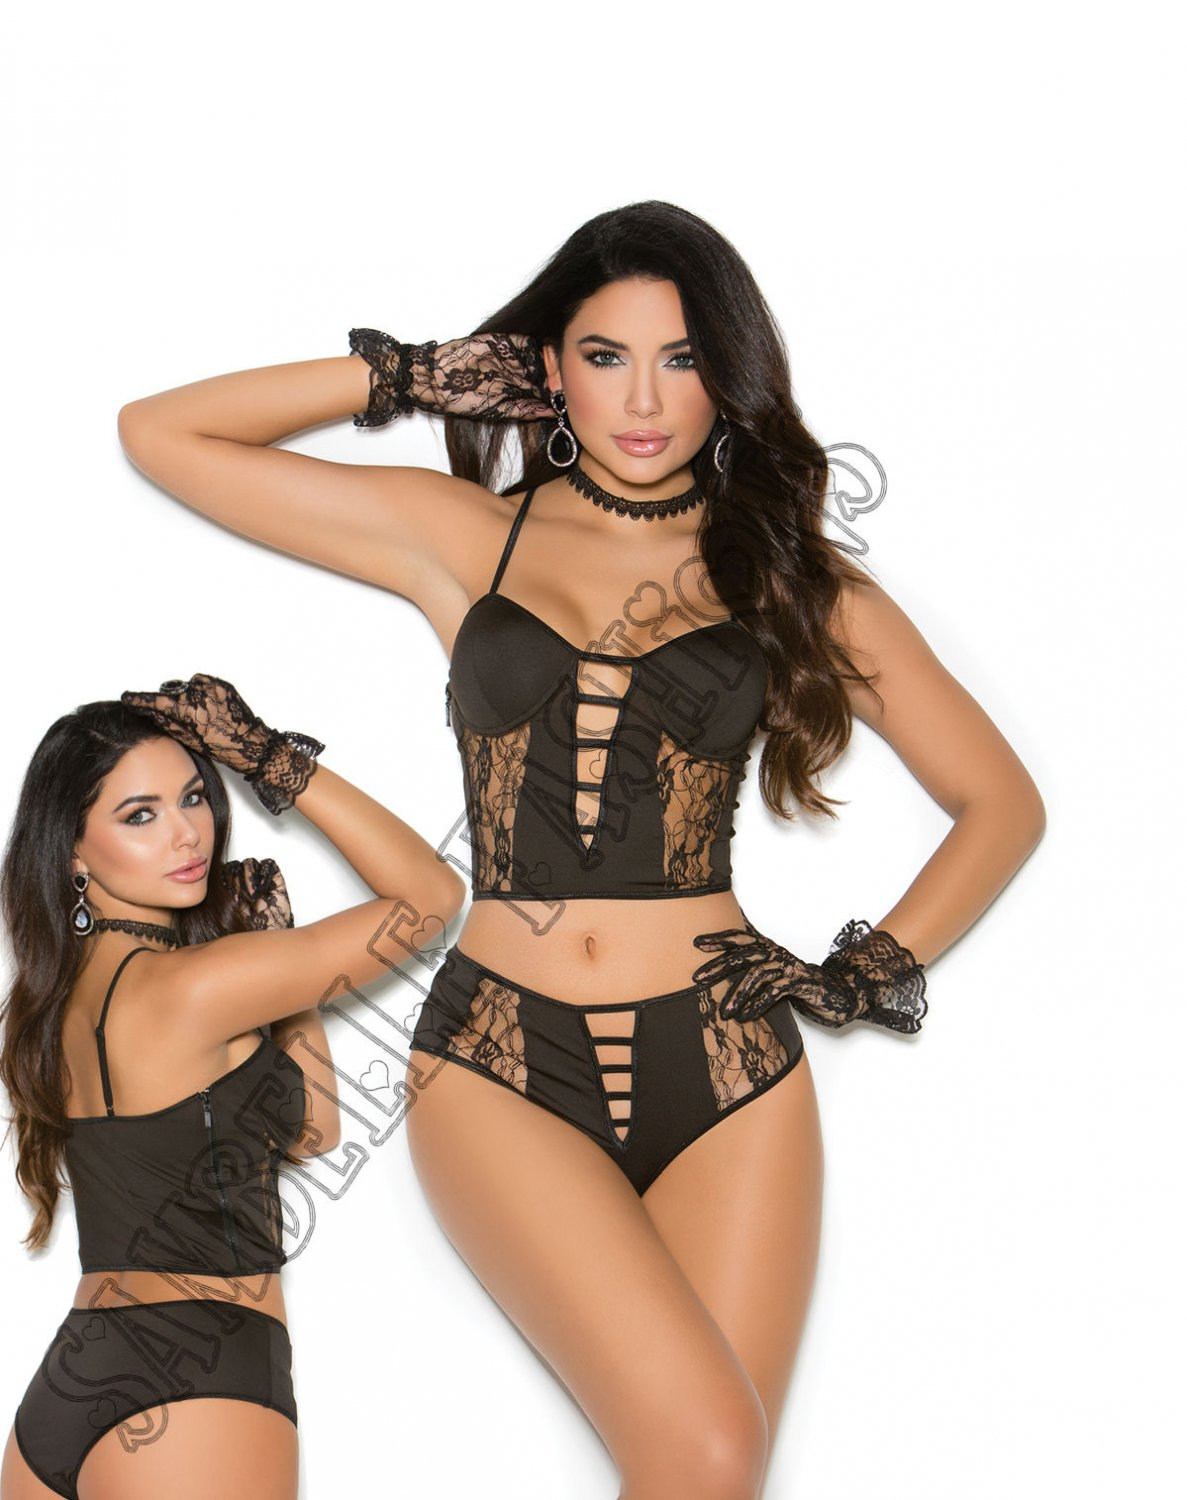 3pc Black Underwire Bralette w/ Lace Inserts, Lace Gloves & Matching Booty Shorts  - Medium